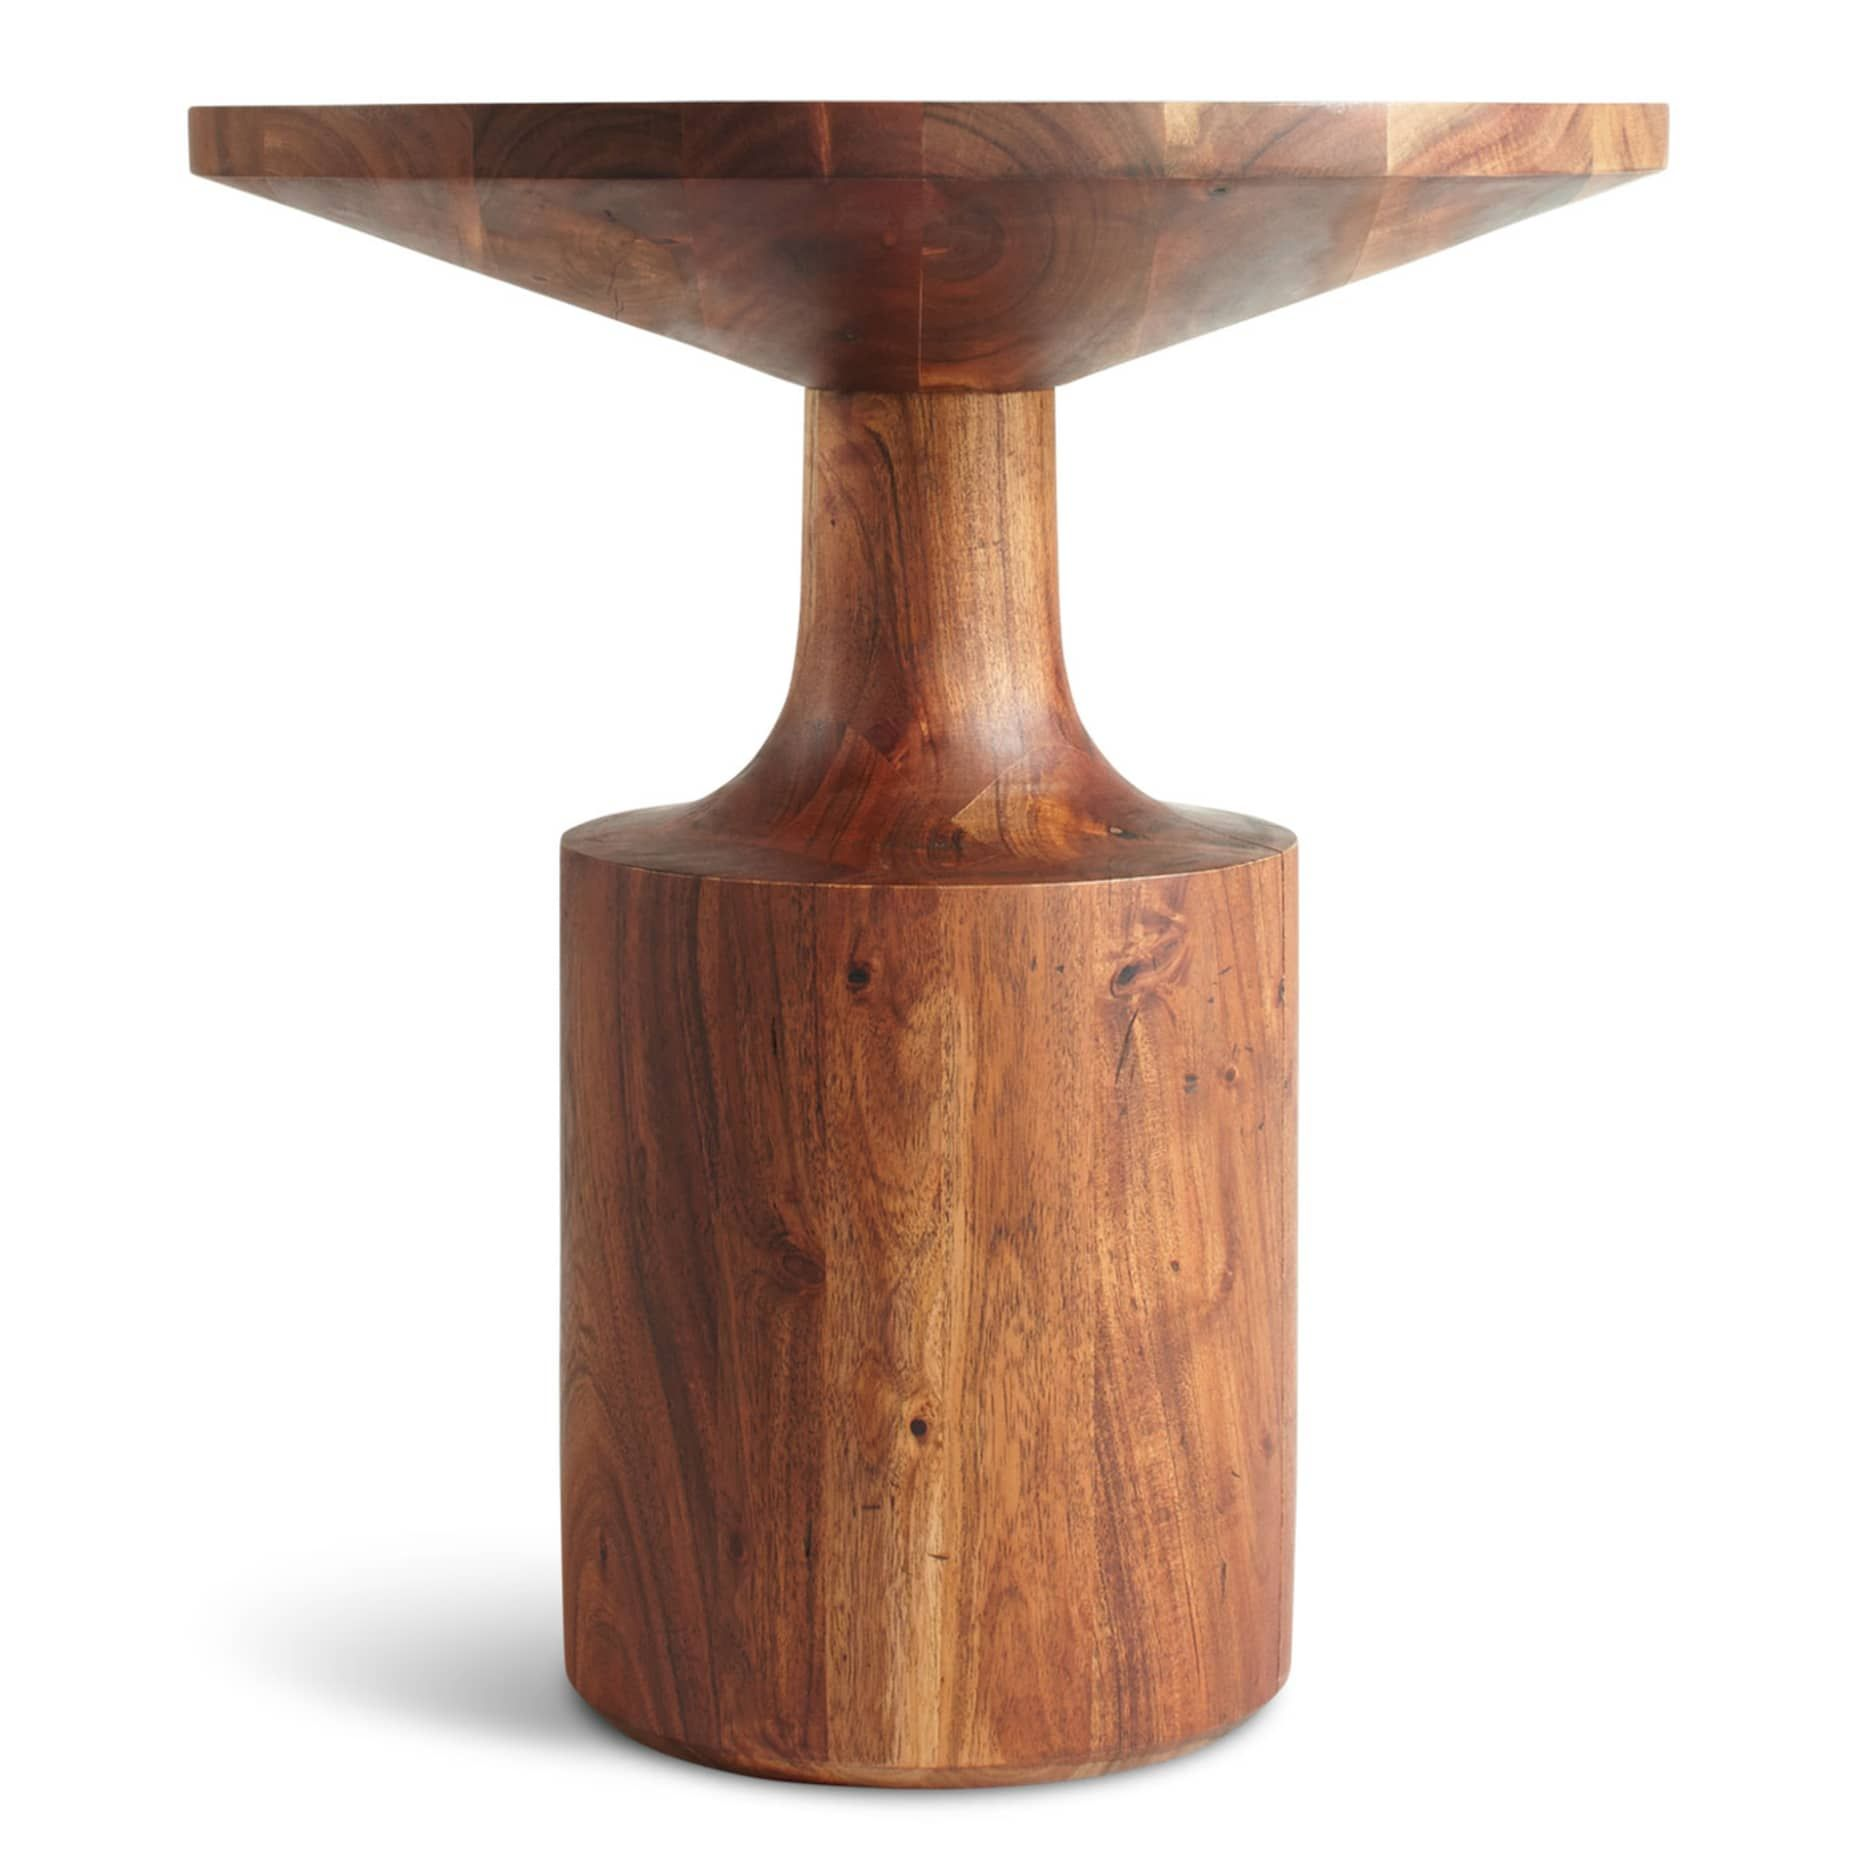 Turn Tall Side Table Tall Side Table Round Wood Side Table Side Table Wood [ jpg ]